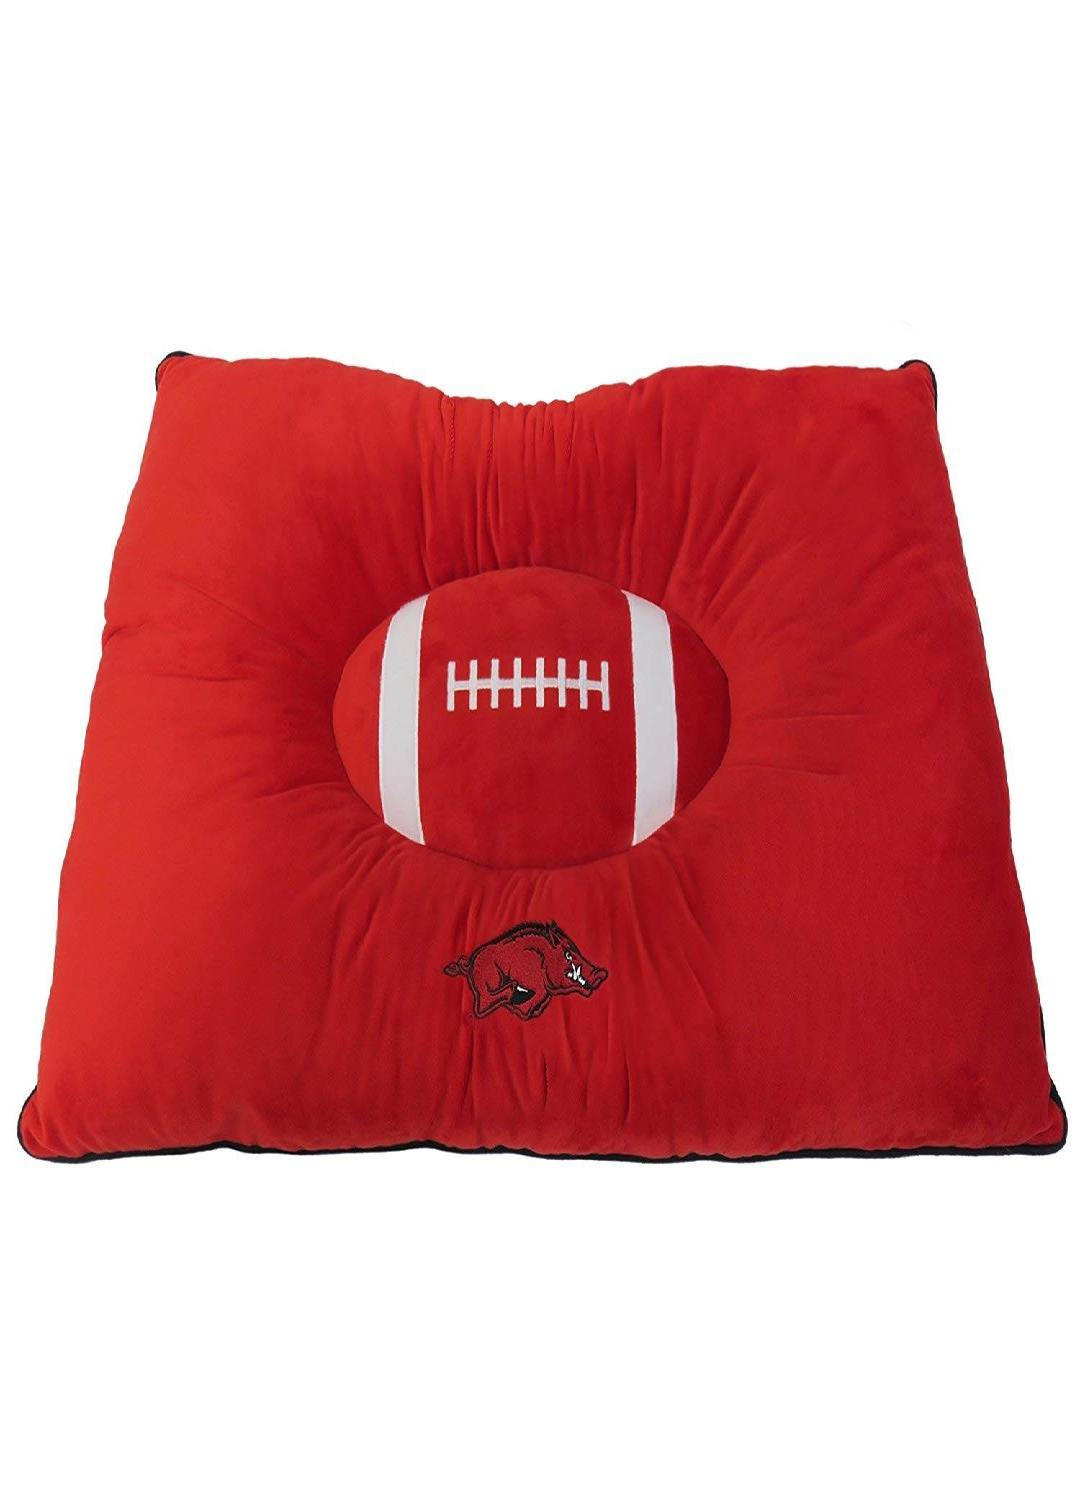 Arkansas Razorbacks Pet Pillow Bed - staygoldendoodle.com